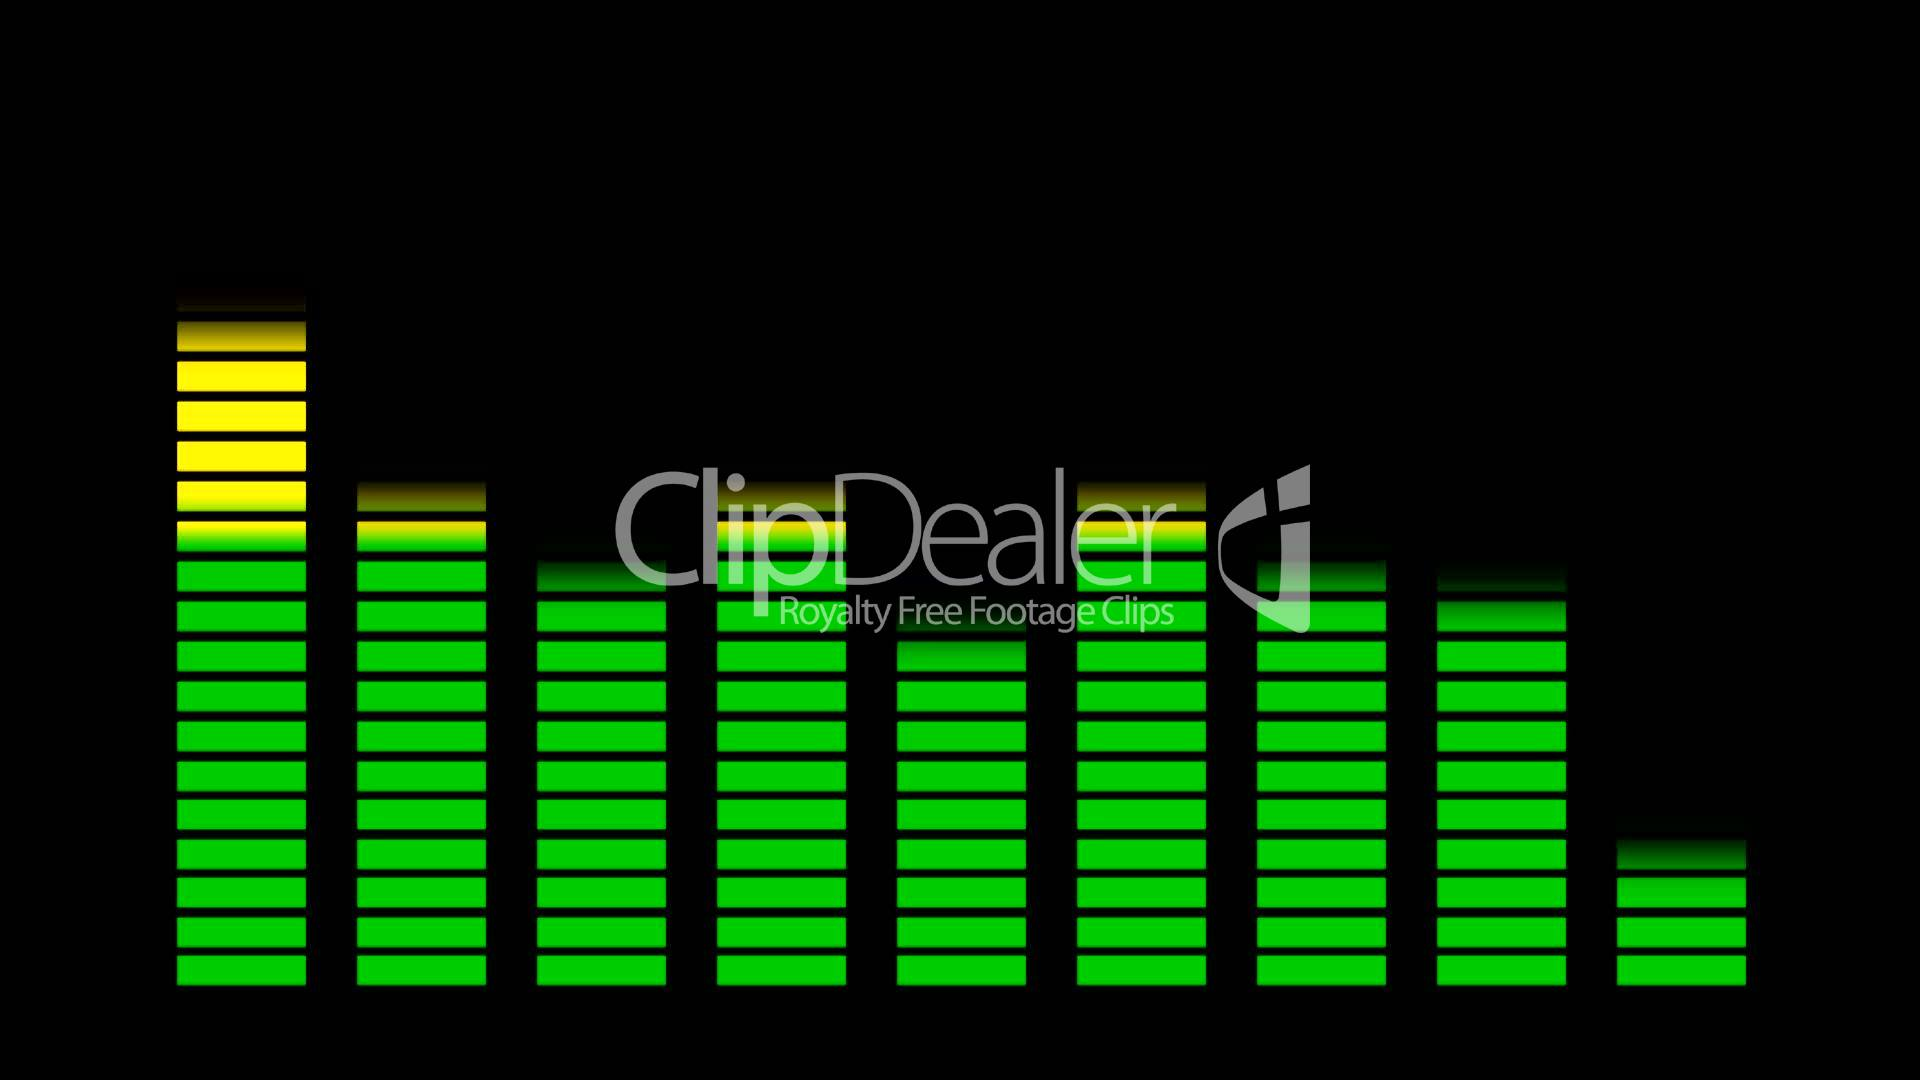 Great Wallpaper Music Frequency - 2--1709066-animation%20of%20music%20graphic%20equalisers  You Should Have_264991.jpg